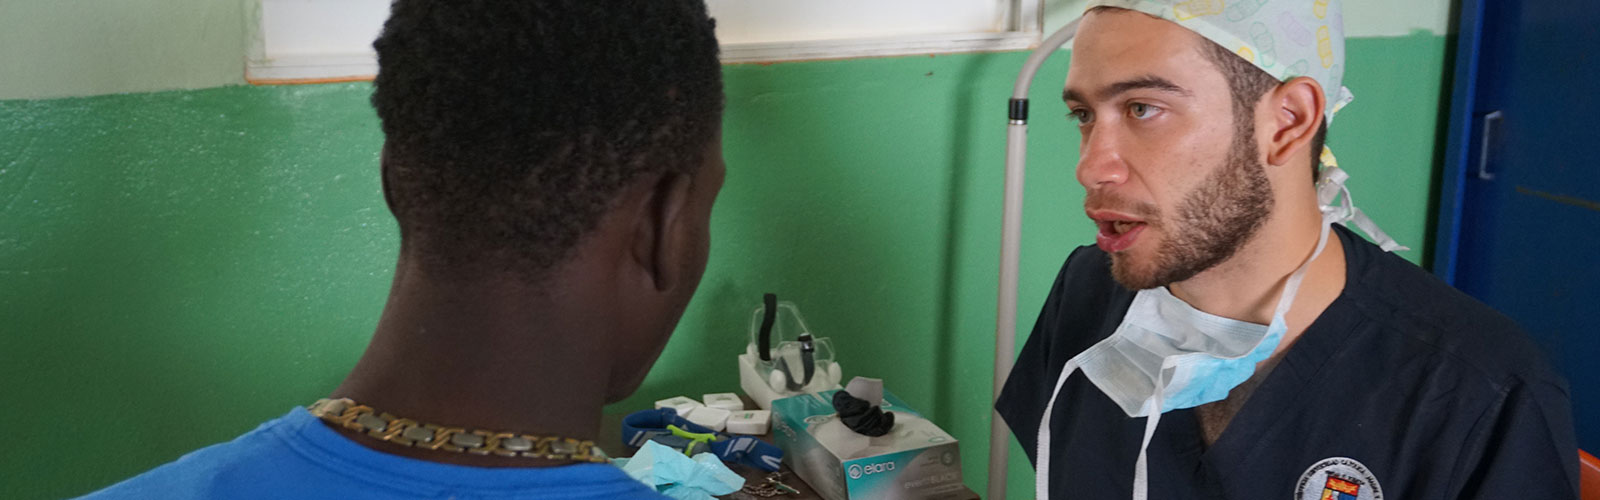 Health professional with patient in the Dominican Republic